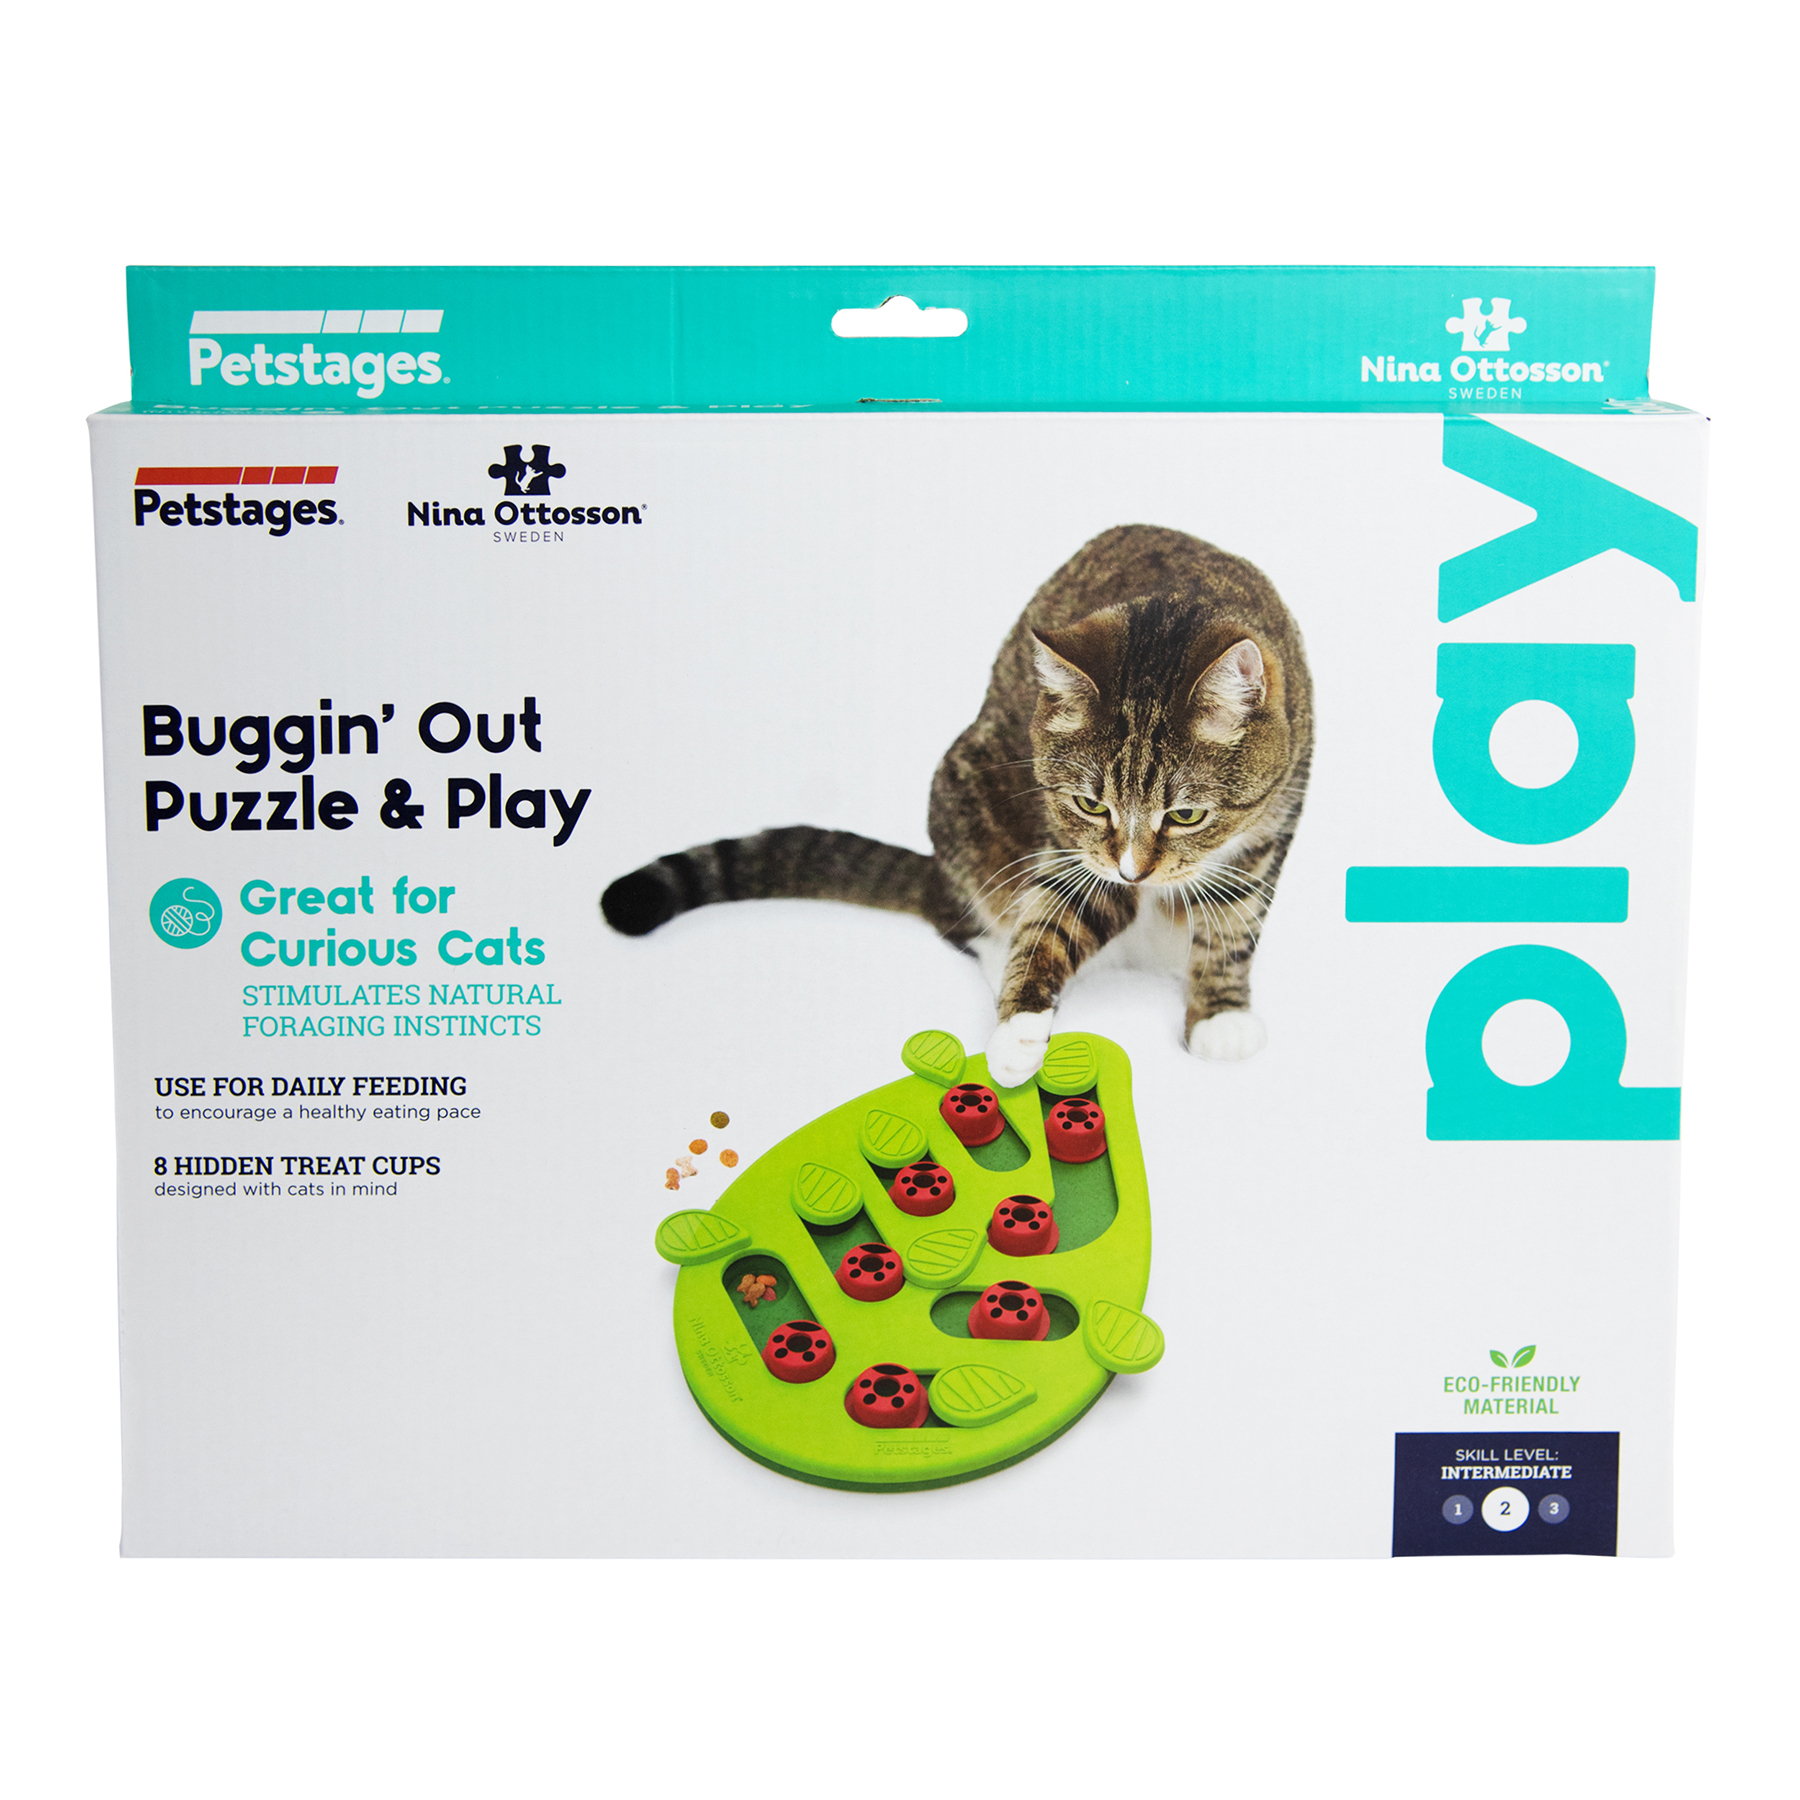 69479 Petstages NinaOttosson PuzzleAndPlay BugginOut Grn Main2